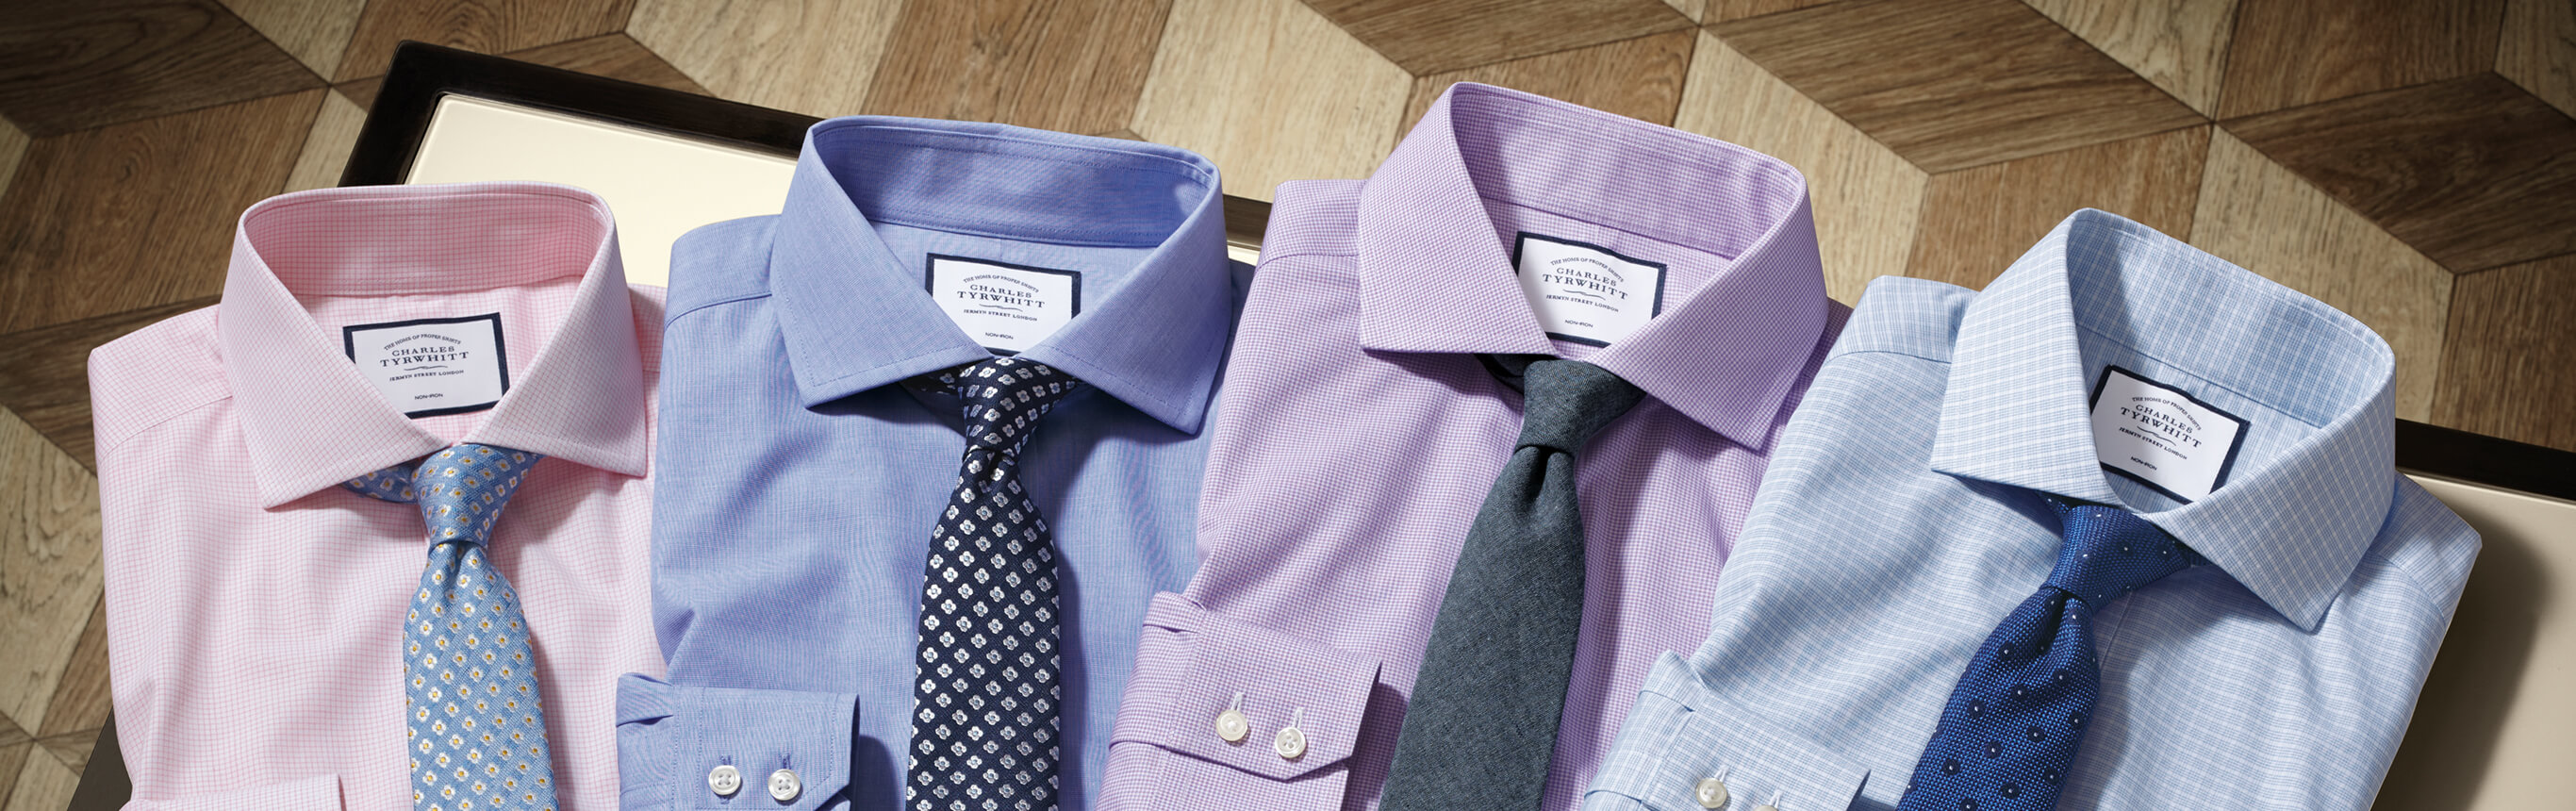 Image of 4 sets of non-iron shirts